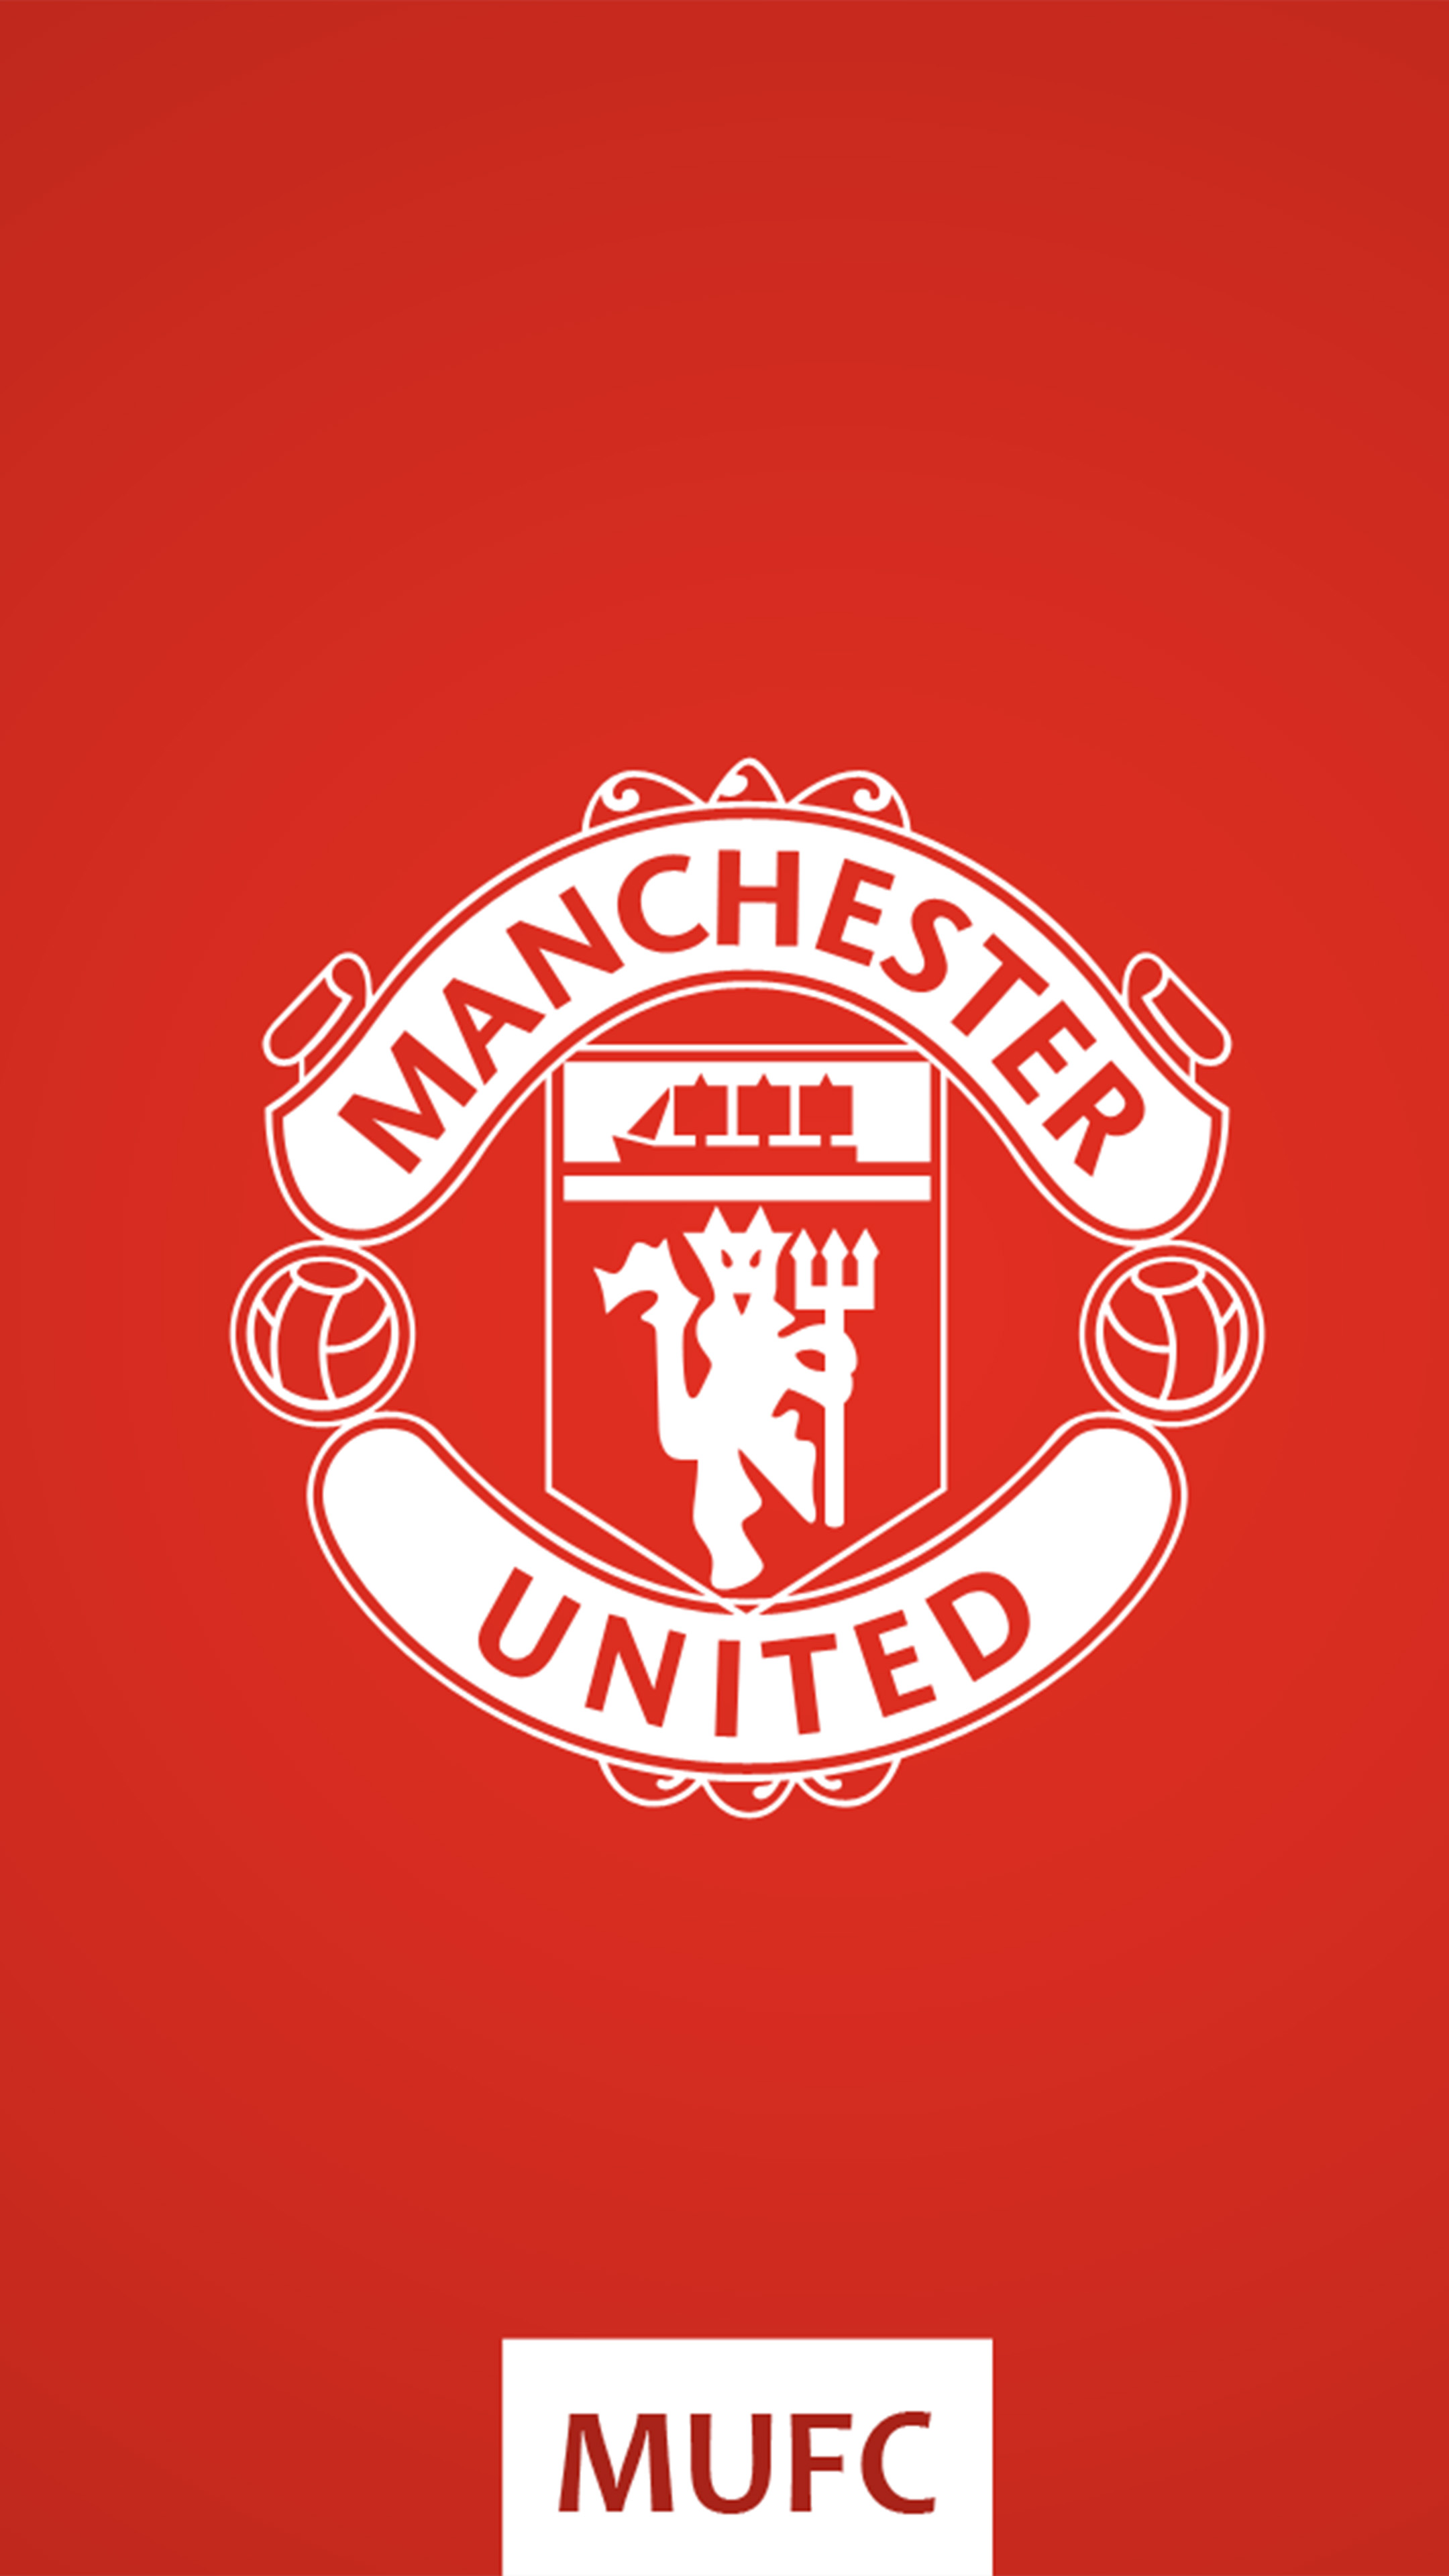 Manchester United Fc Logo Red Background 4k Ultra Hd Mobile Wallpaper